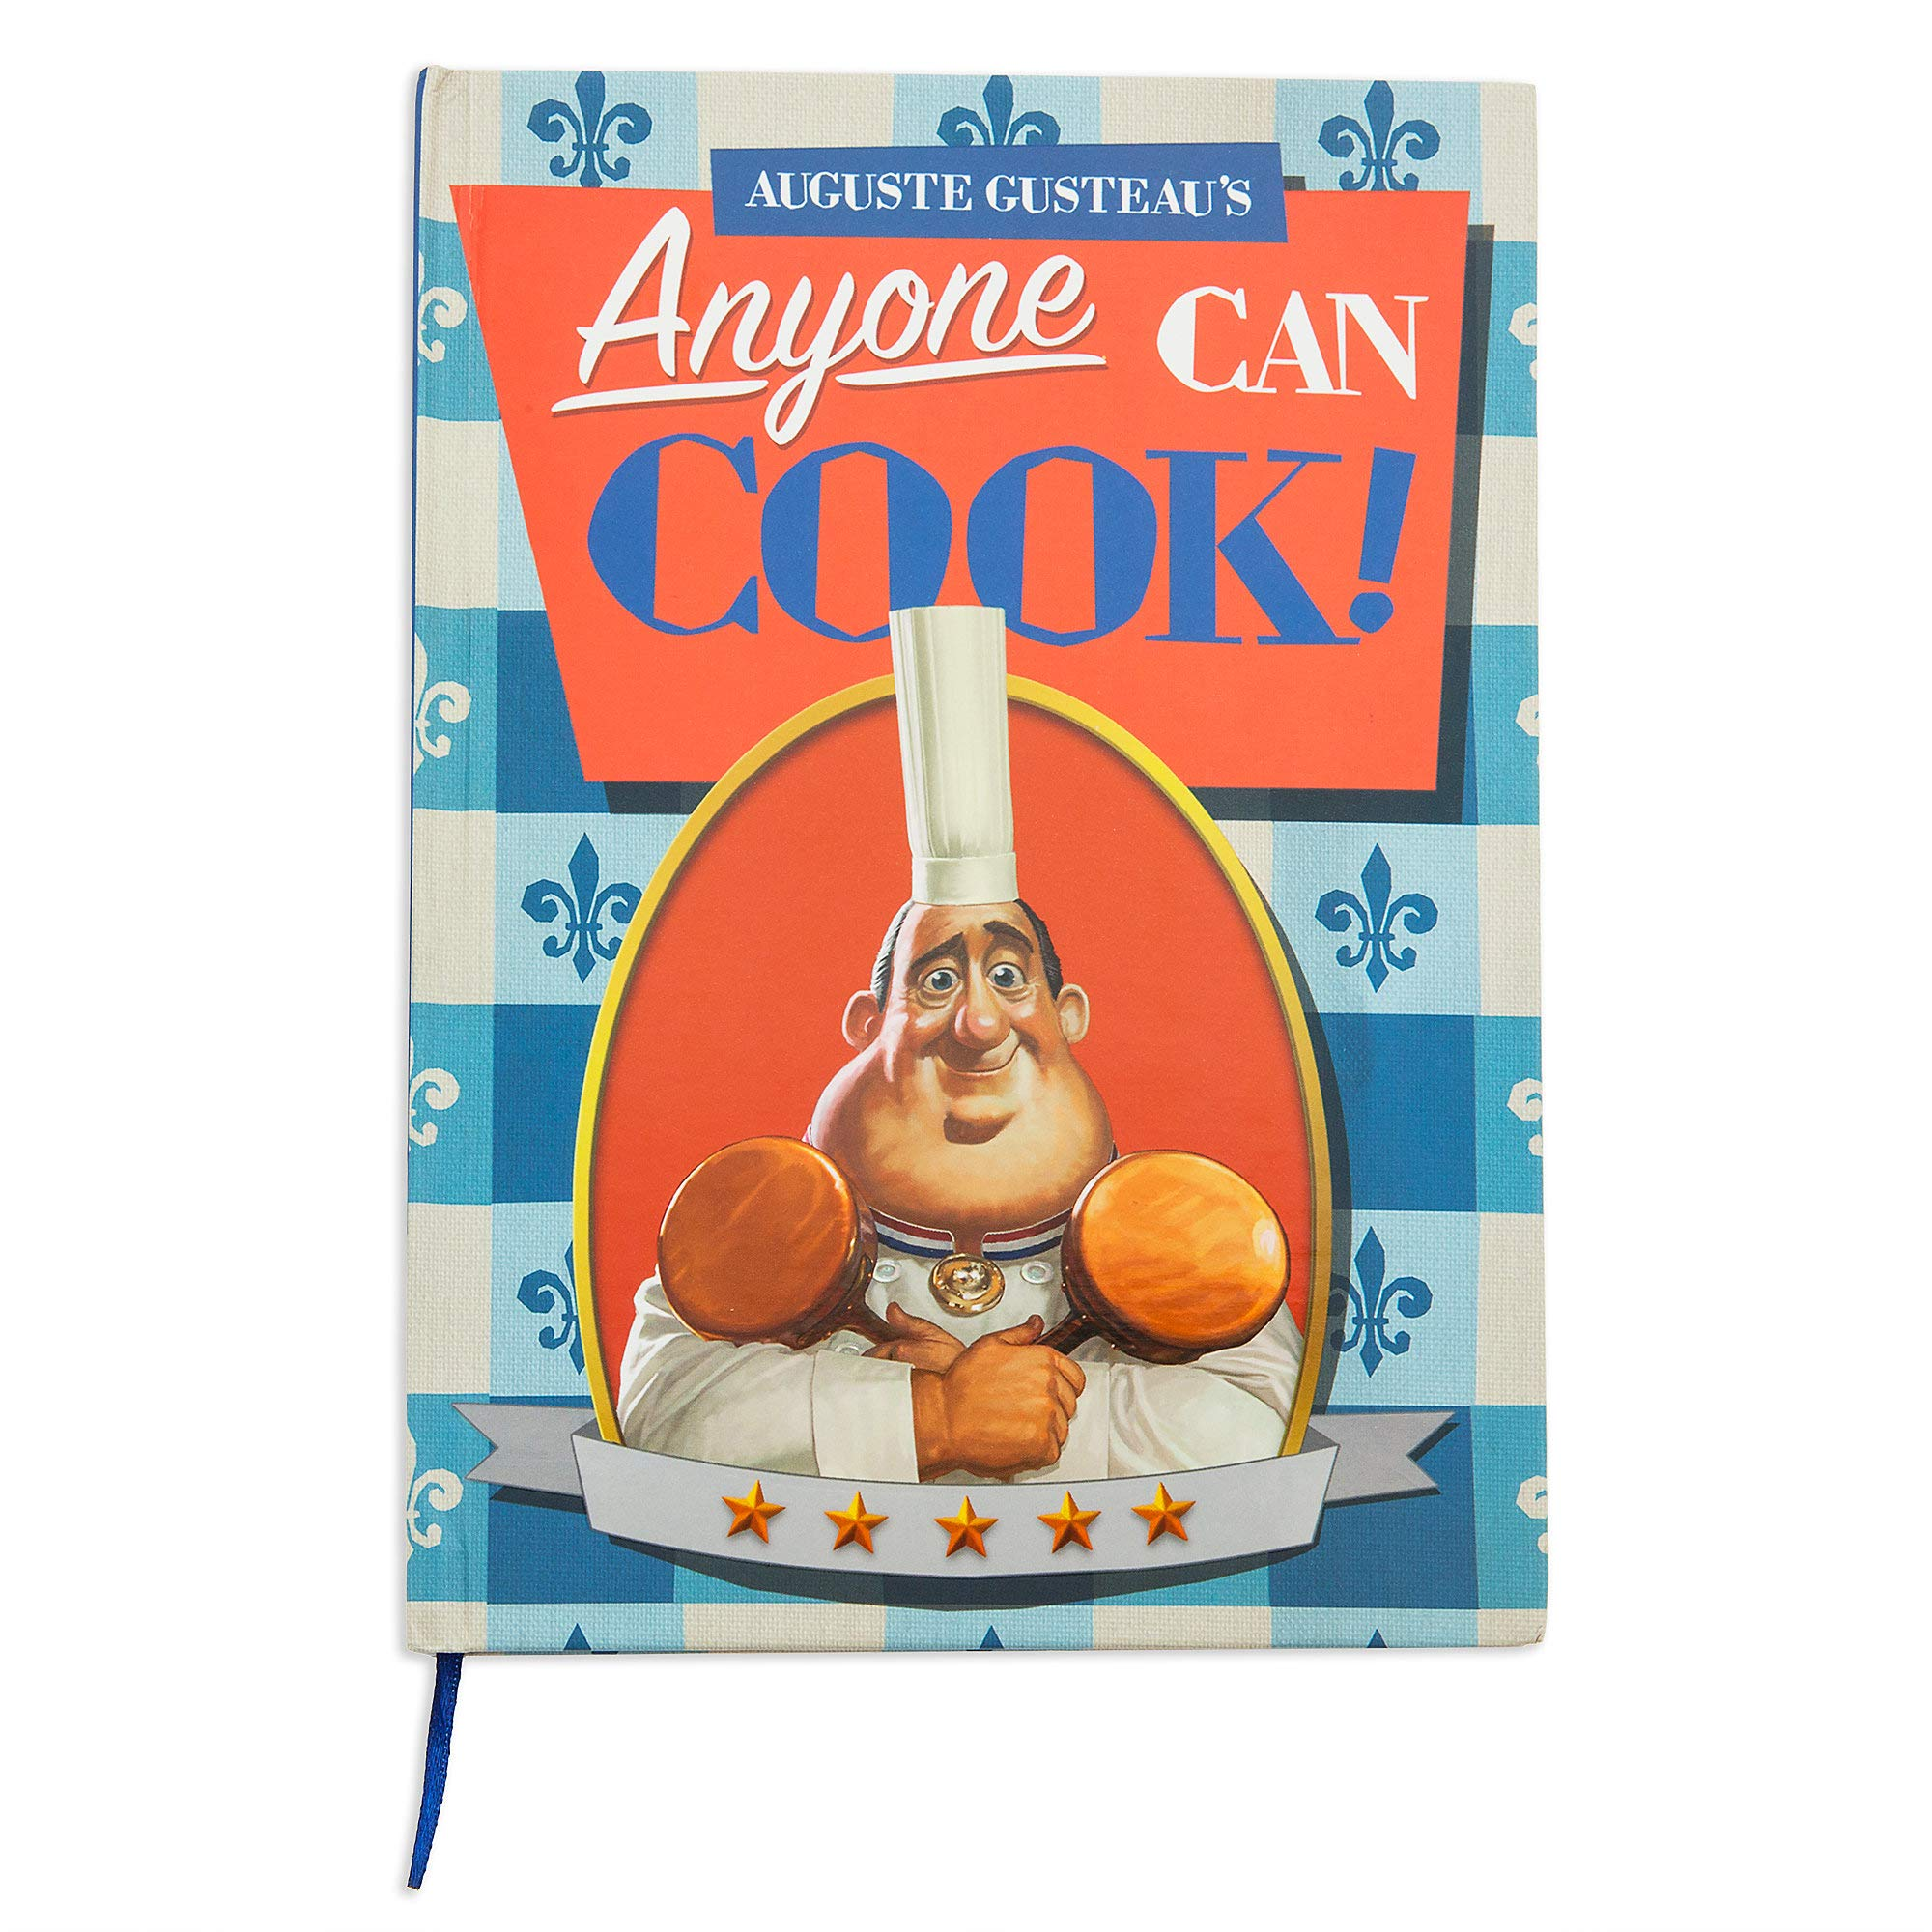 Disney Auguste Gusteau's ''Anyone Can Cook!'' Journal - Ratatouille by Disney